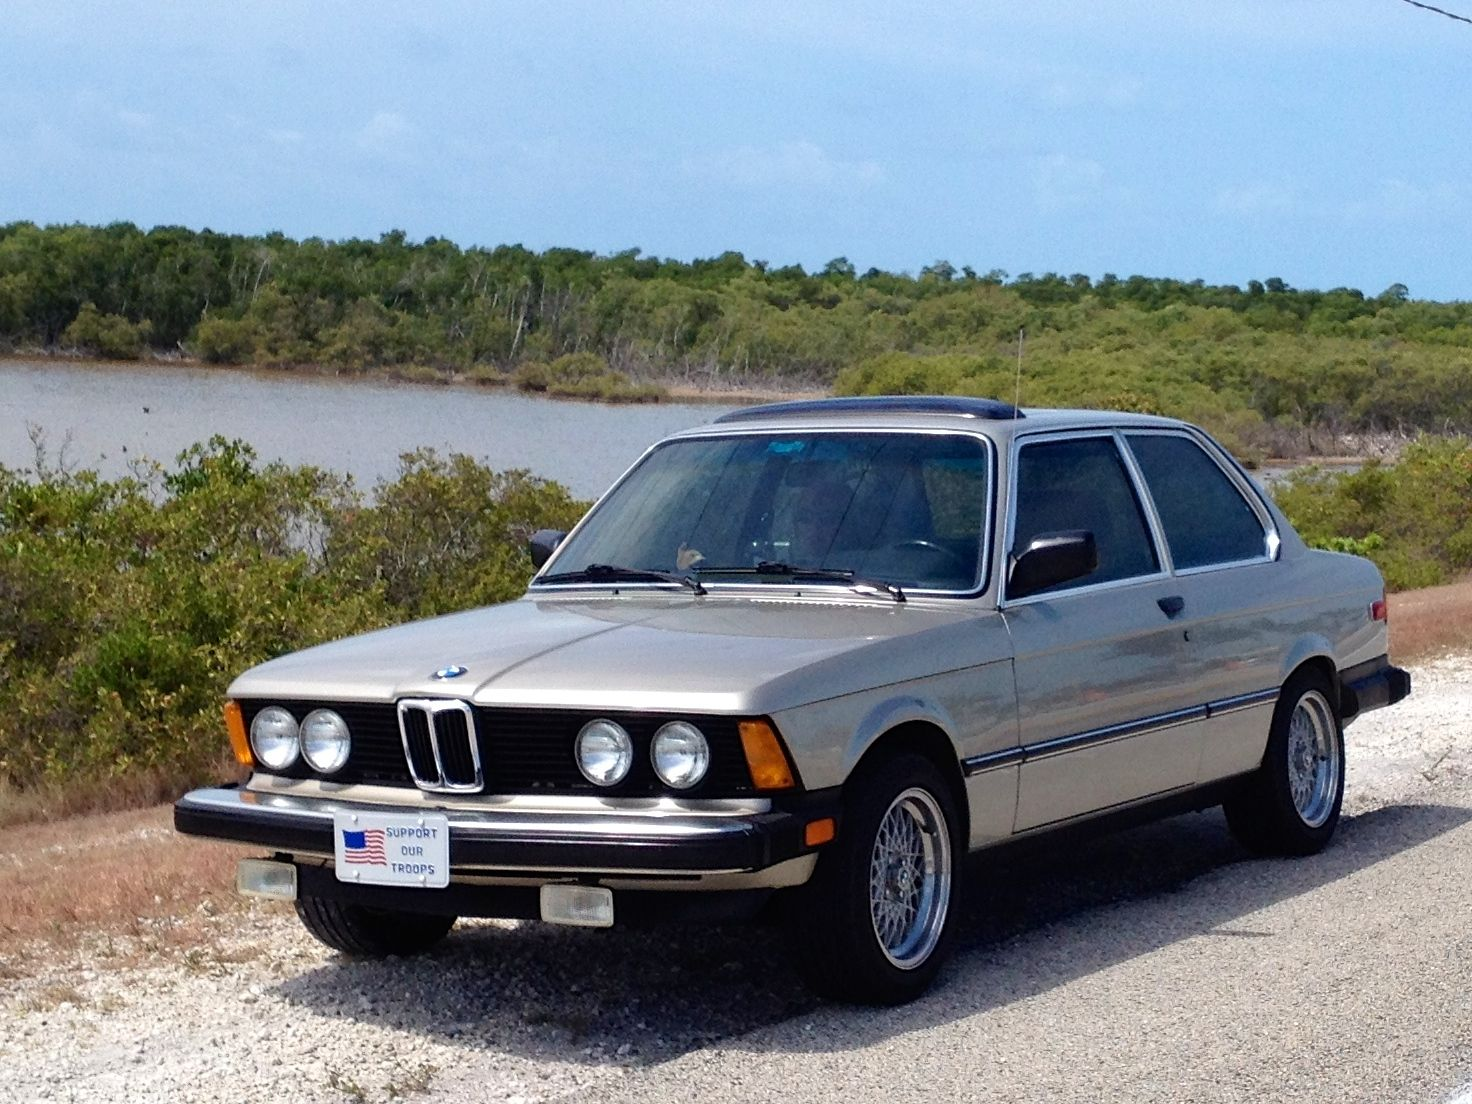 1983 bmw 320i on us1 in the florida keys bimmer e21 pinterest florida keys bmw and wheels. Black Bedroom Furniture Sets. Home Design Ideas